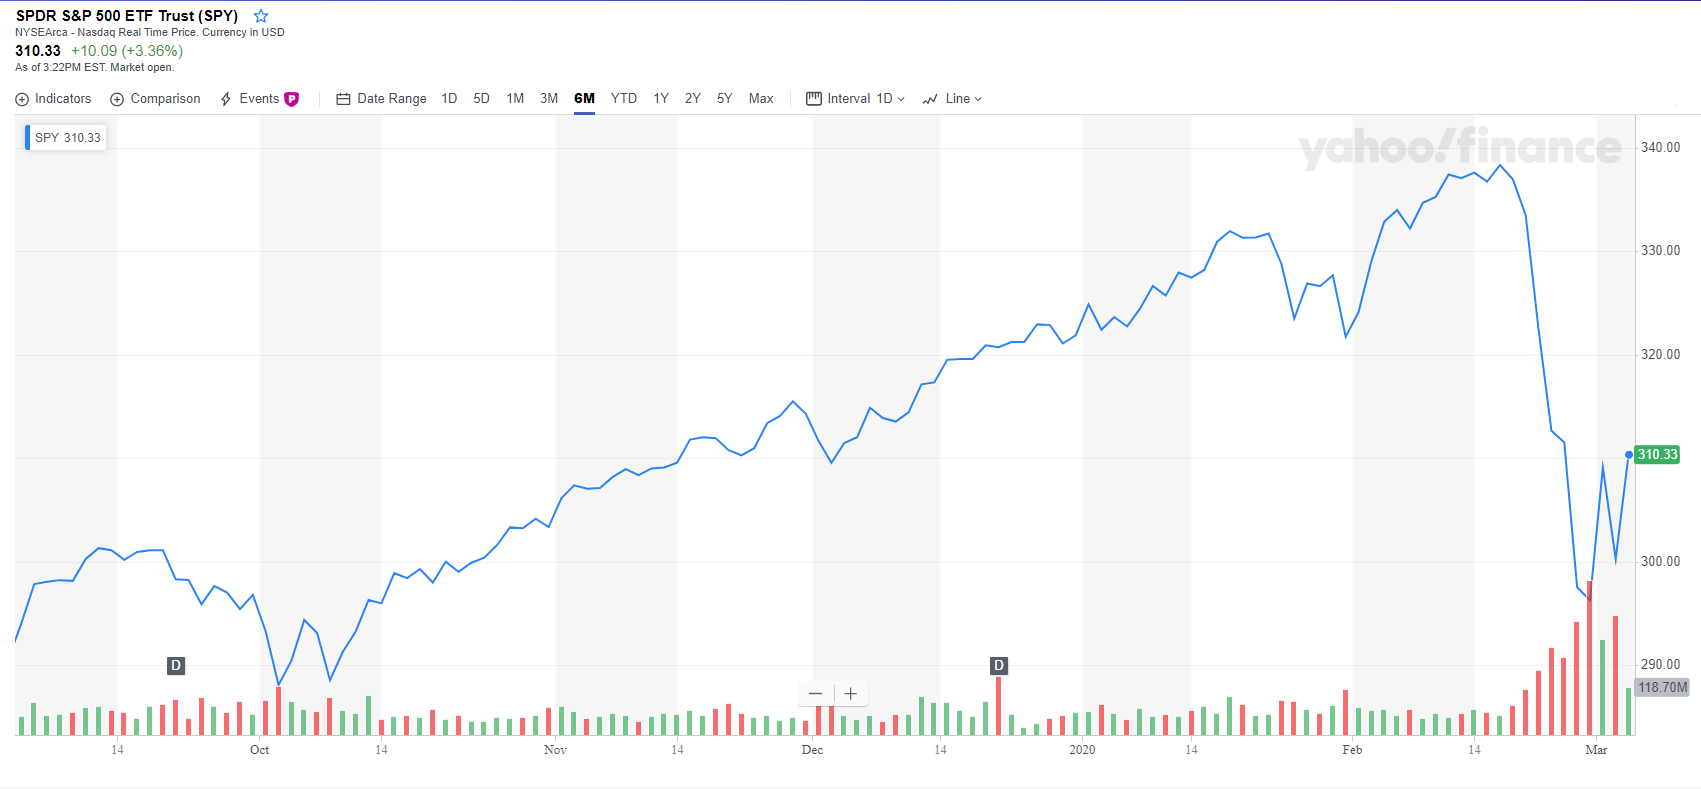 5 Safe And Cheap Dividend Stocks To Invest (March 2020)